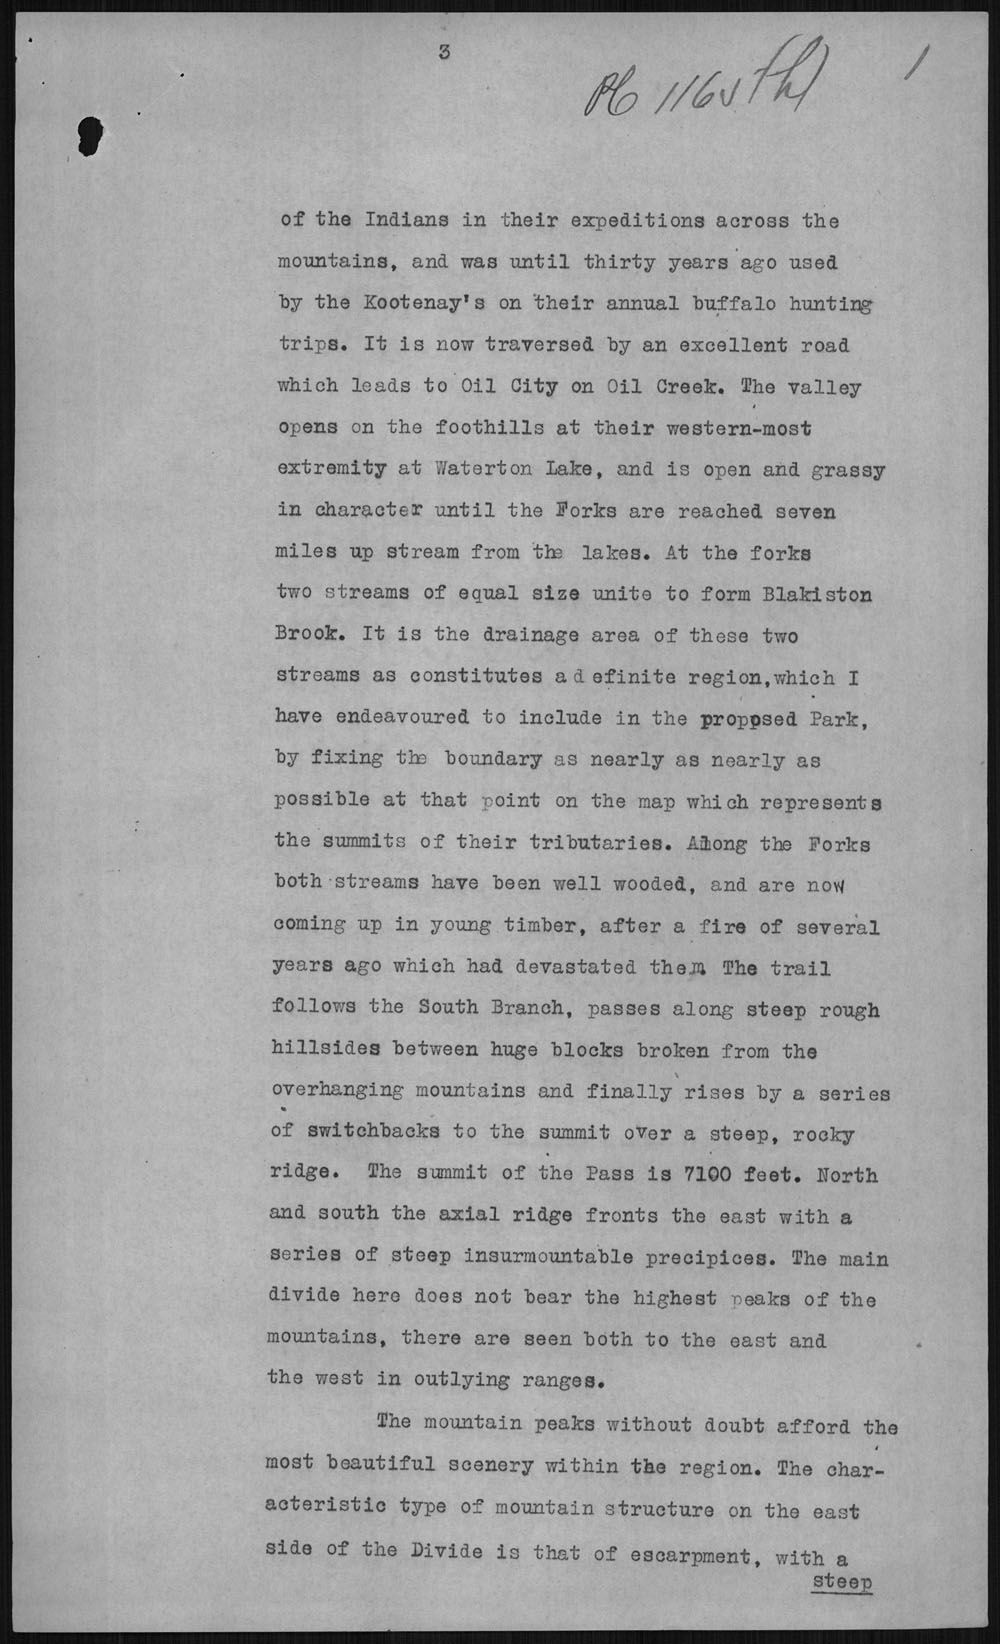 Digitized page of Orders in Council for Image No.: e010877260-v8